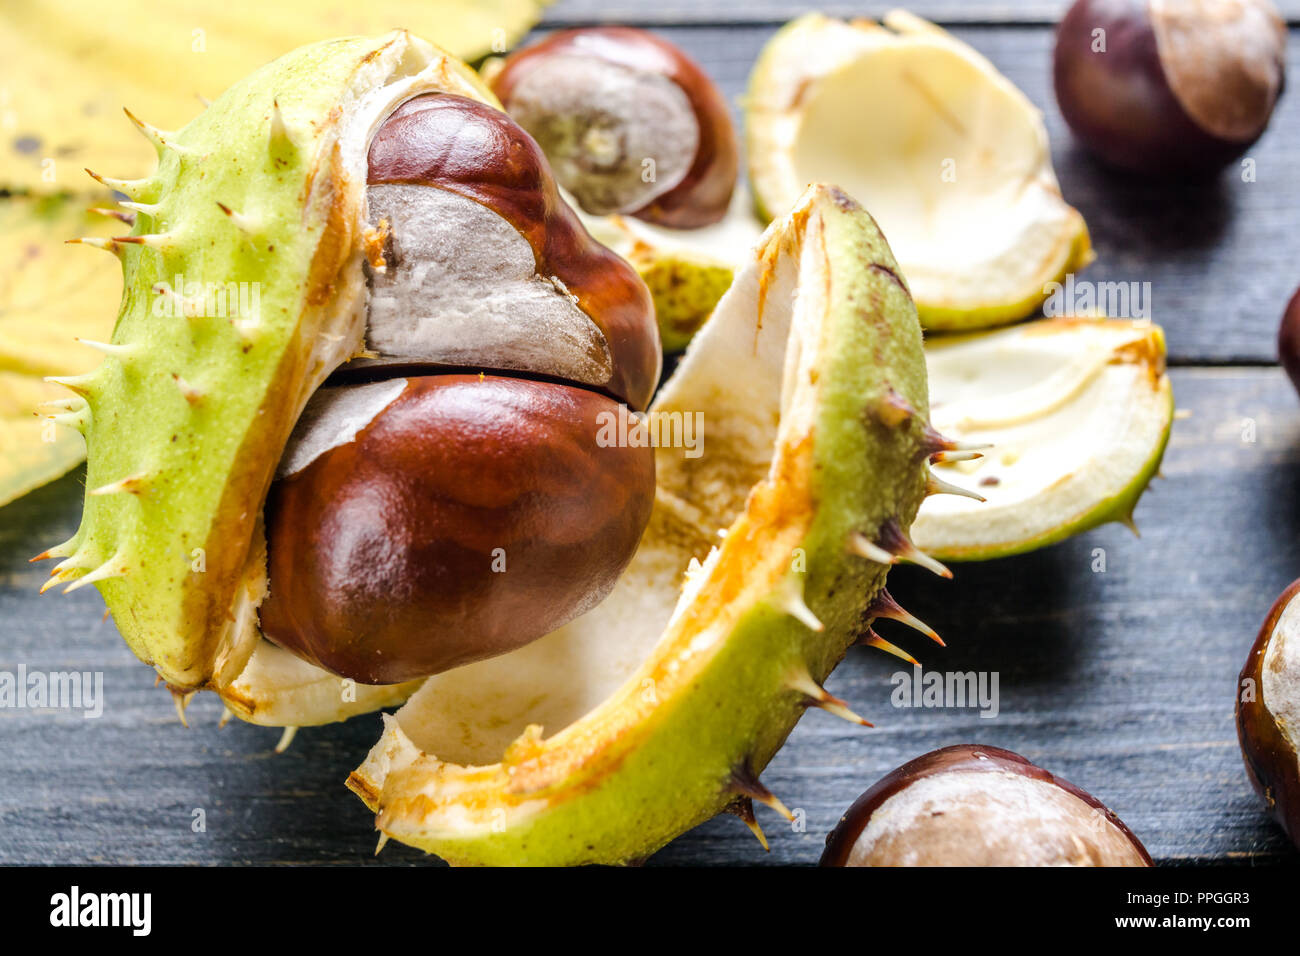 Non edible horse chestnuts on wooden table close up - Stock Image